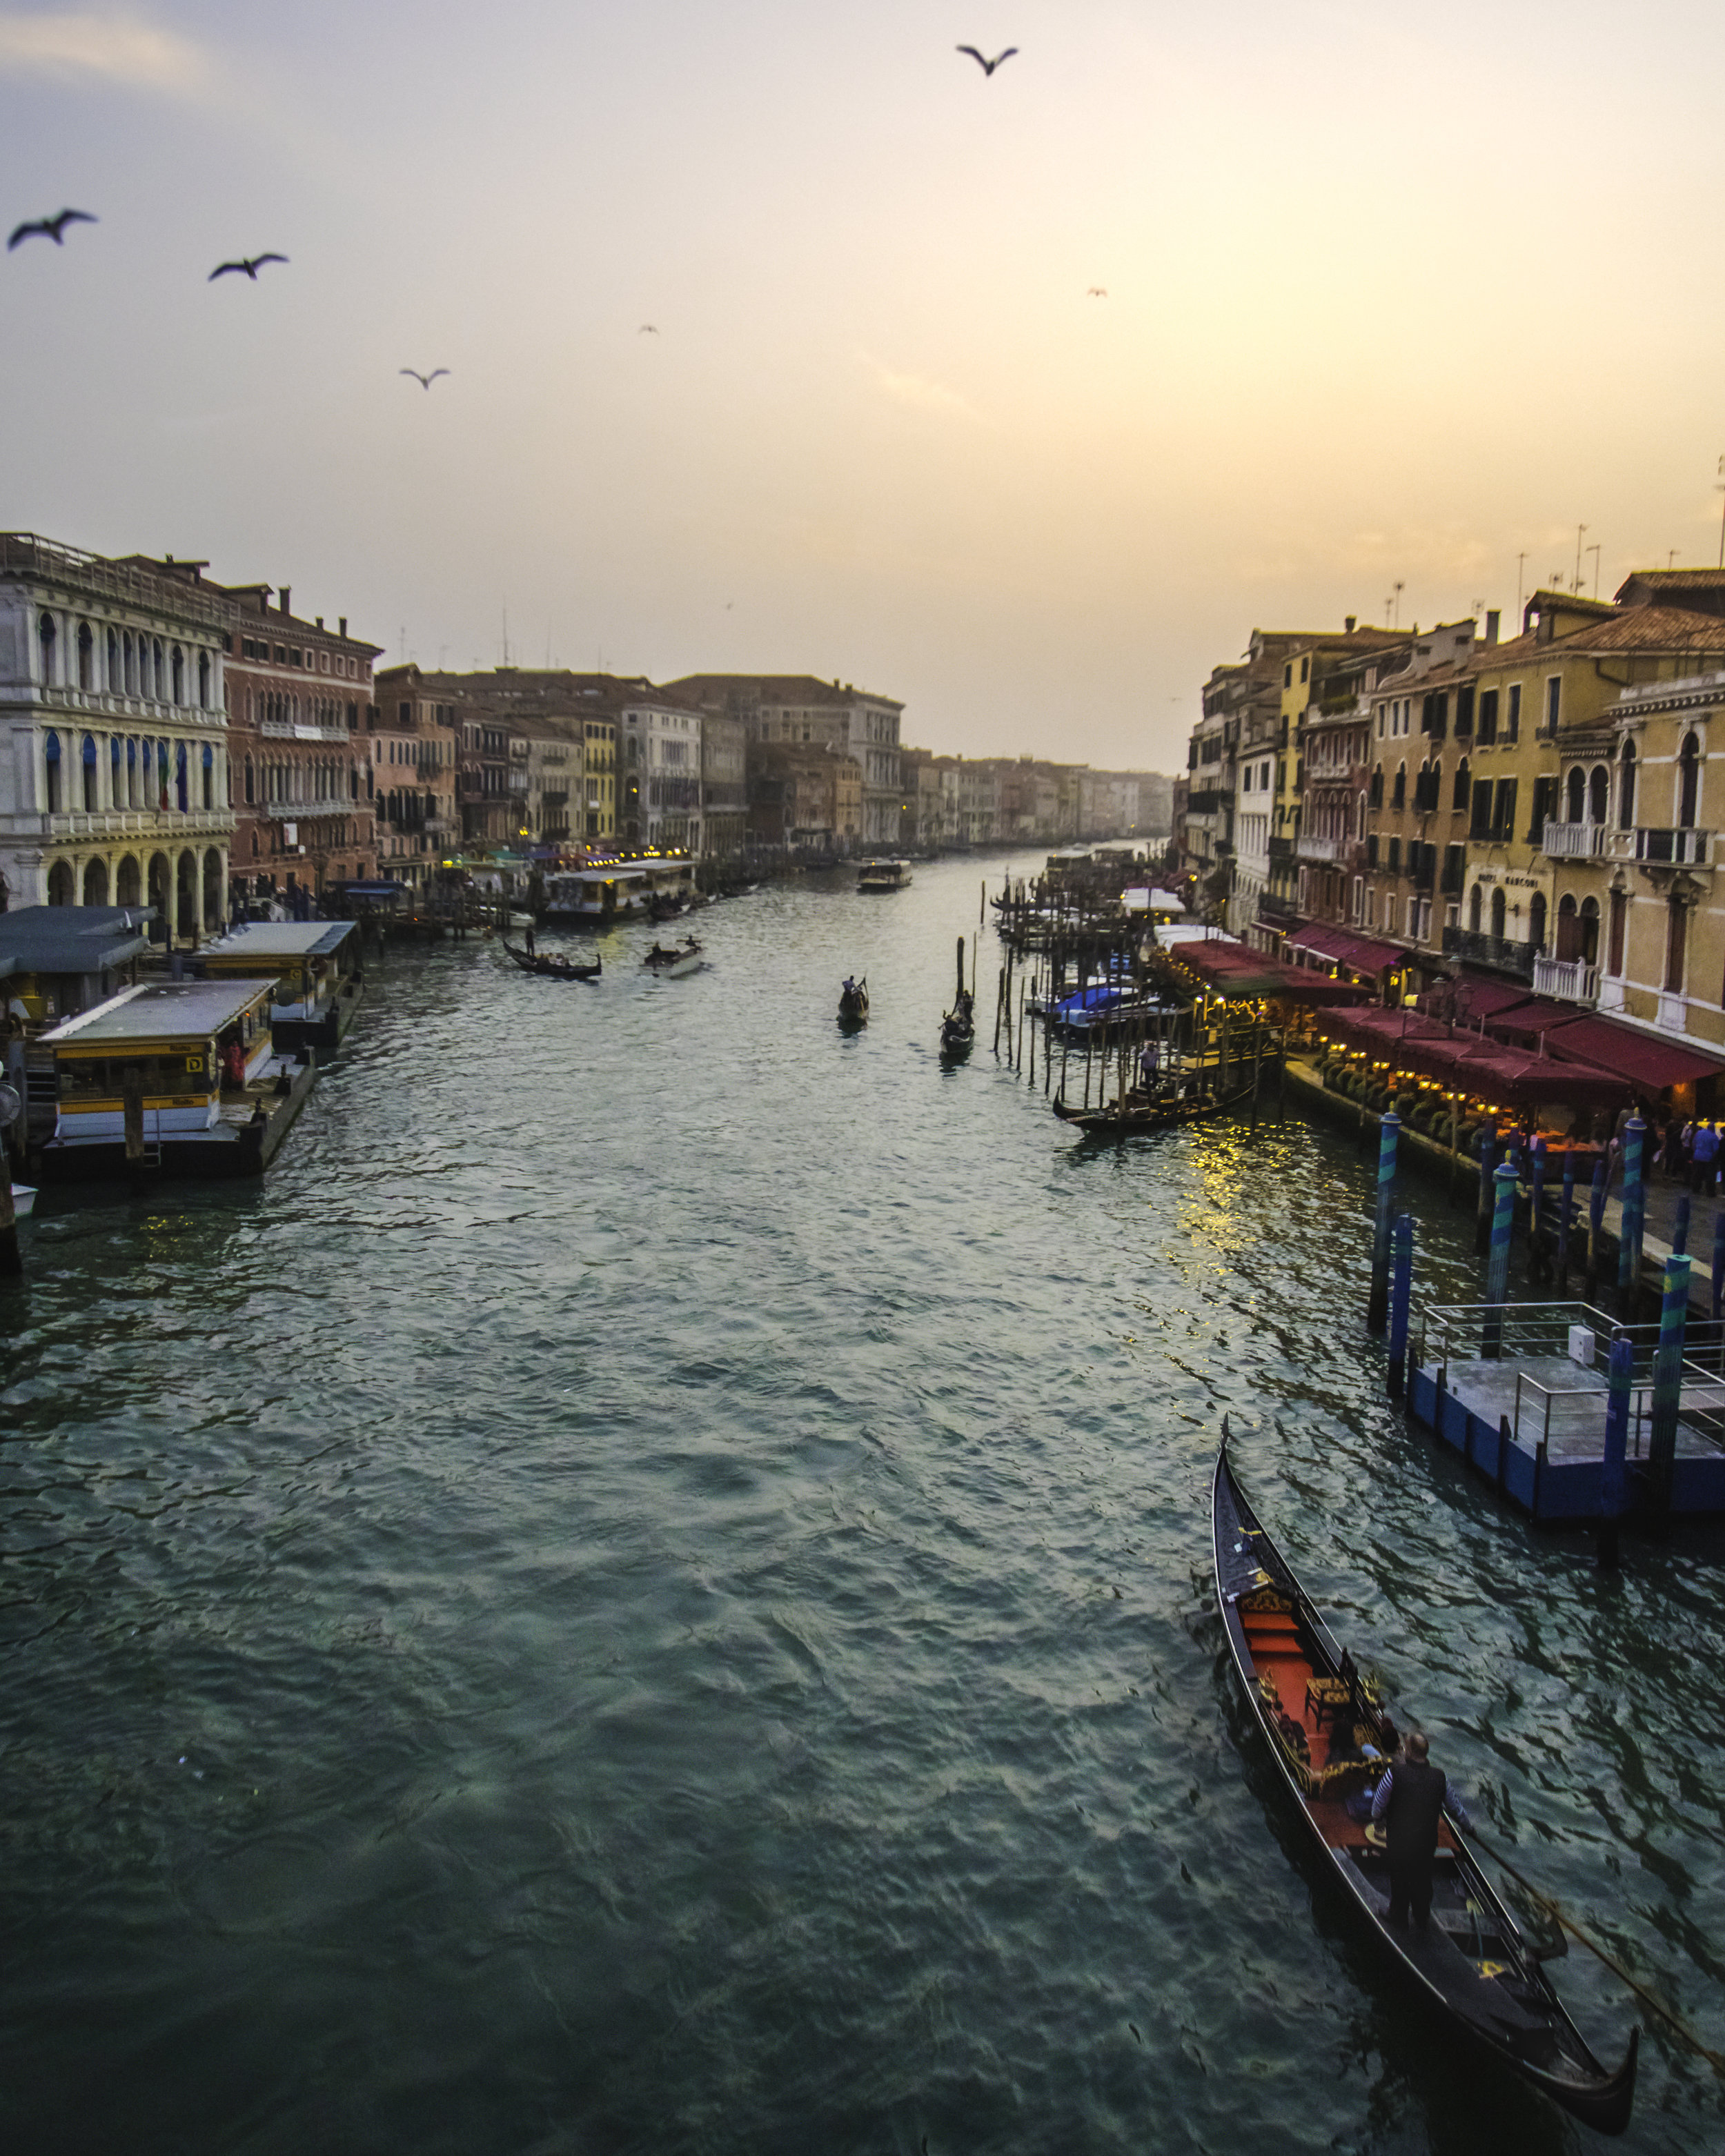 Venice, Italy by Connor Trimble